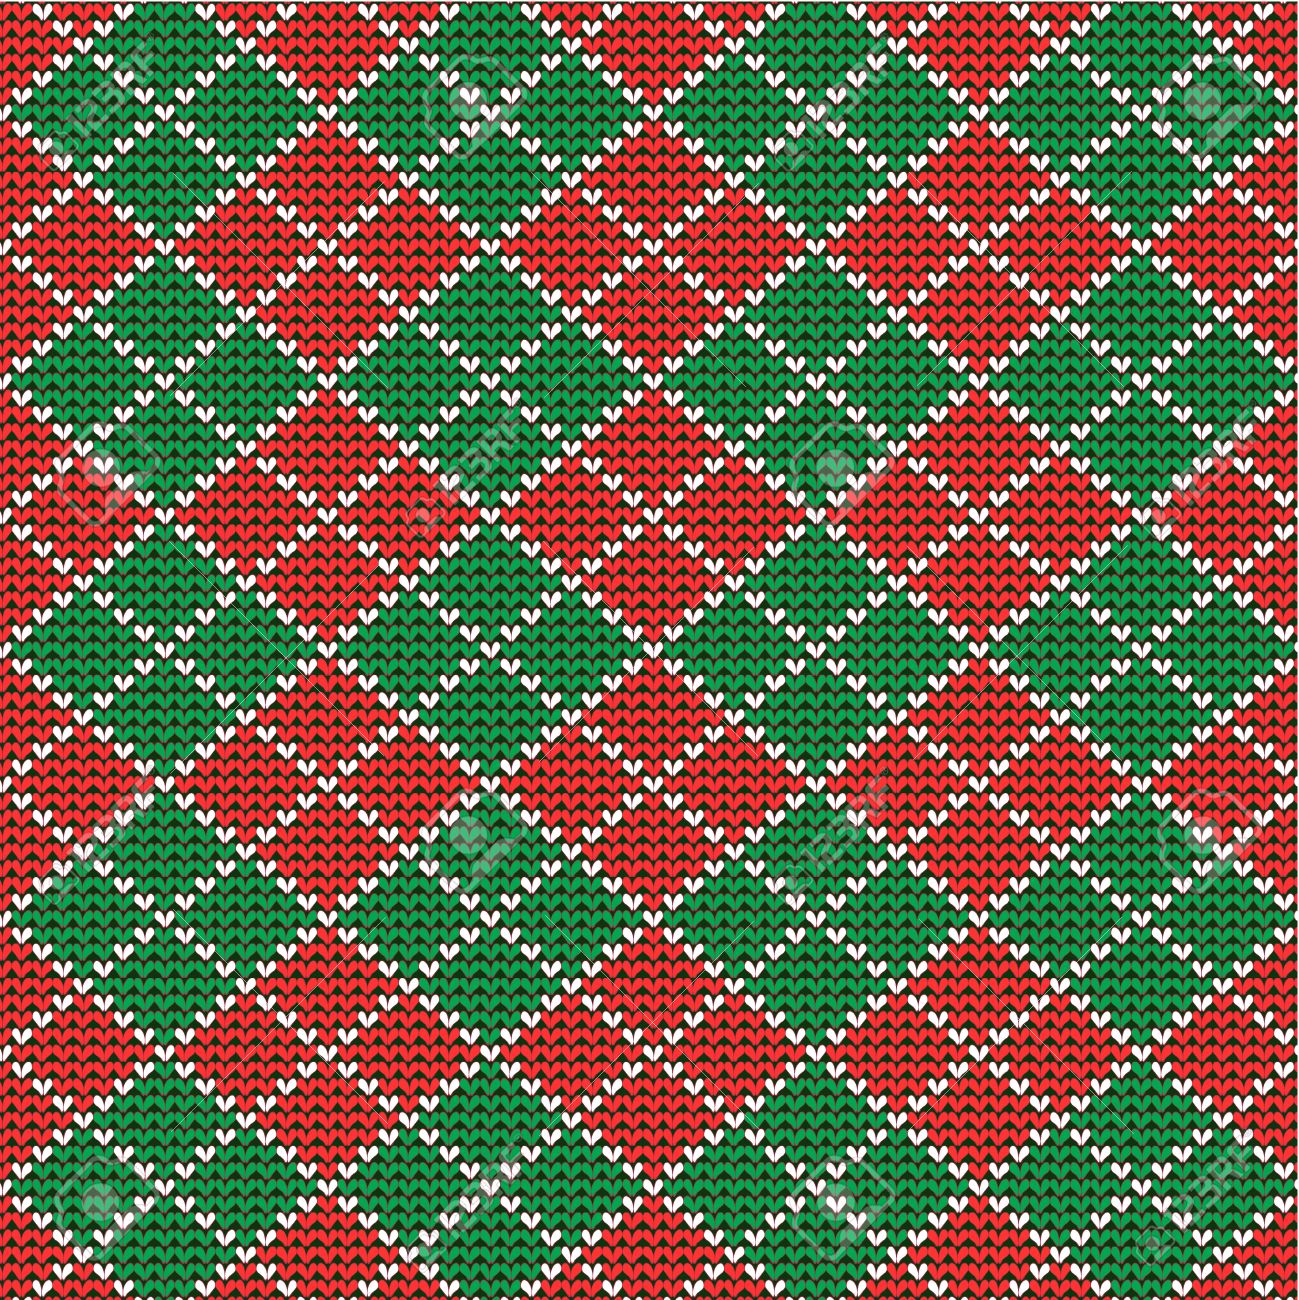 Knitted Red And Green Christmas Argyle Background, Plus Seamless ...